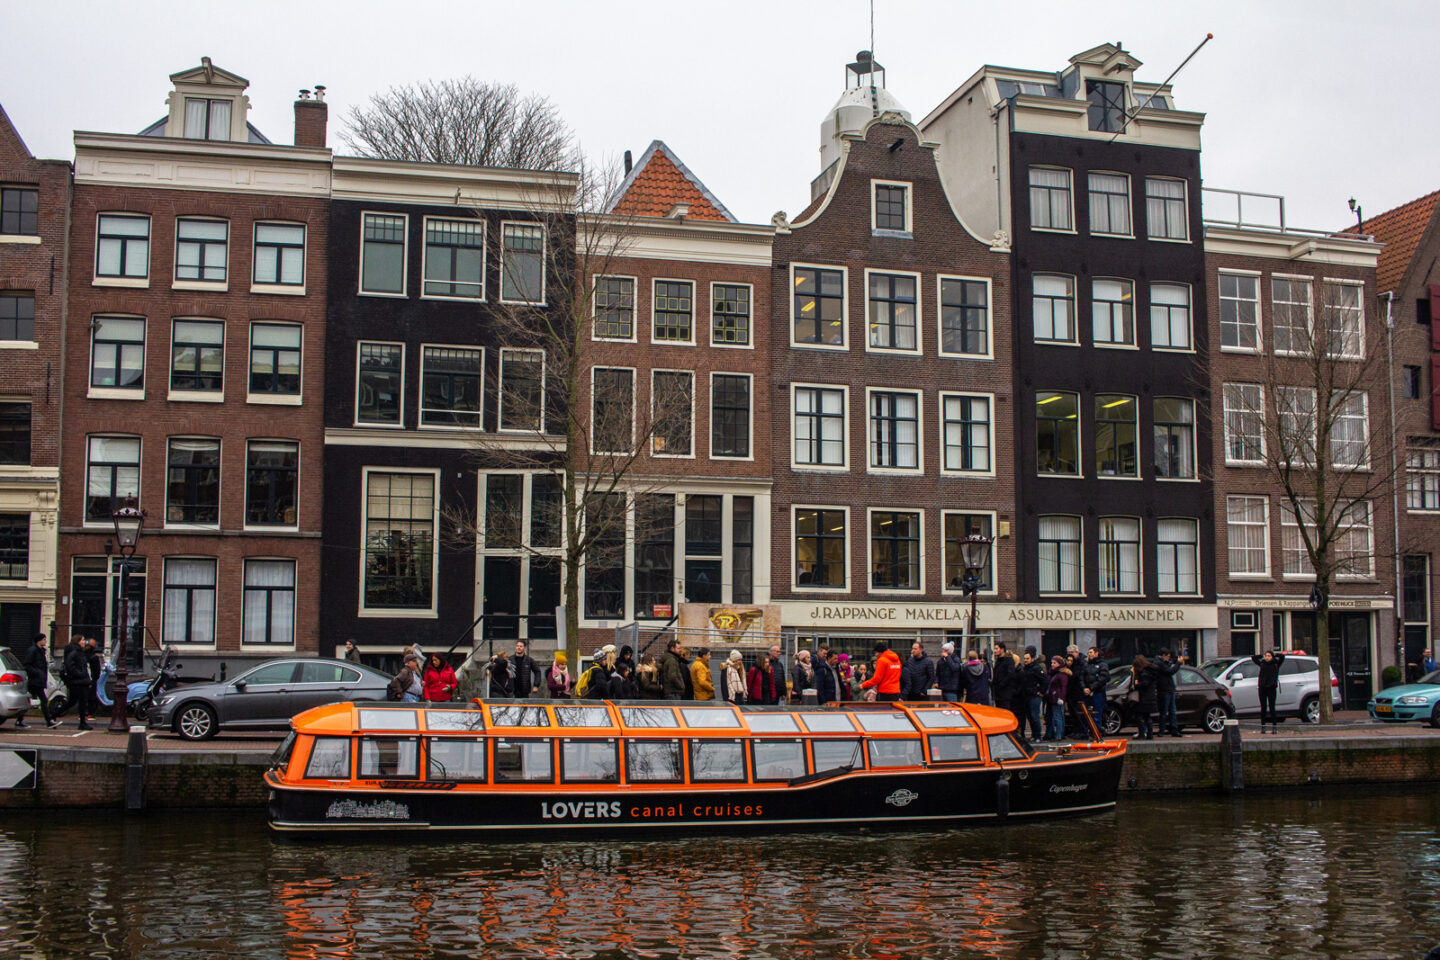 Lovers Canal Cruises in Amsterdam